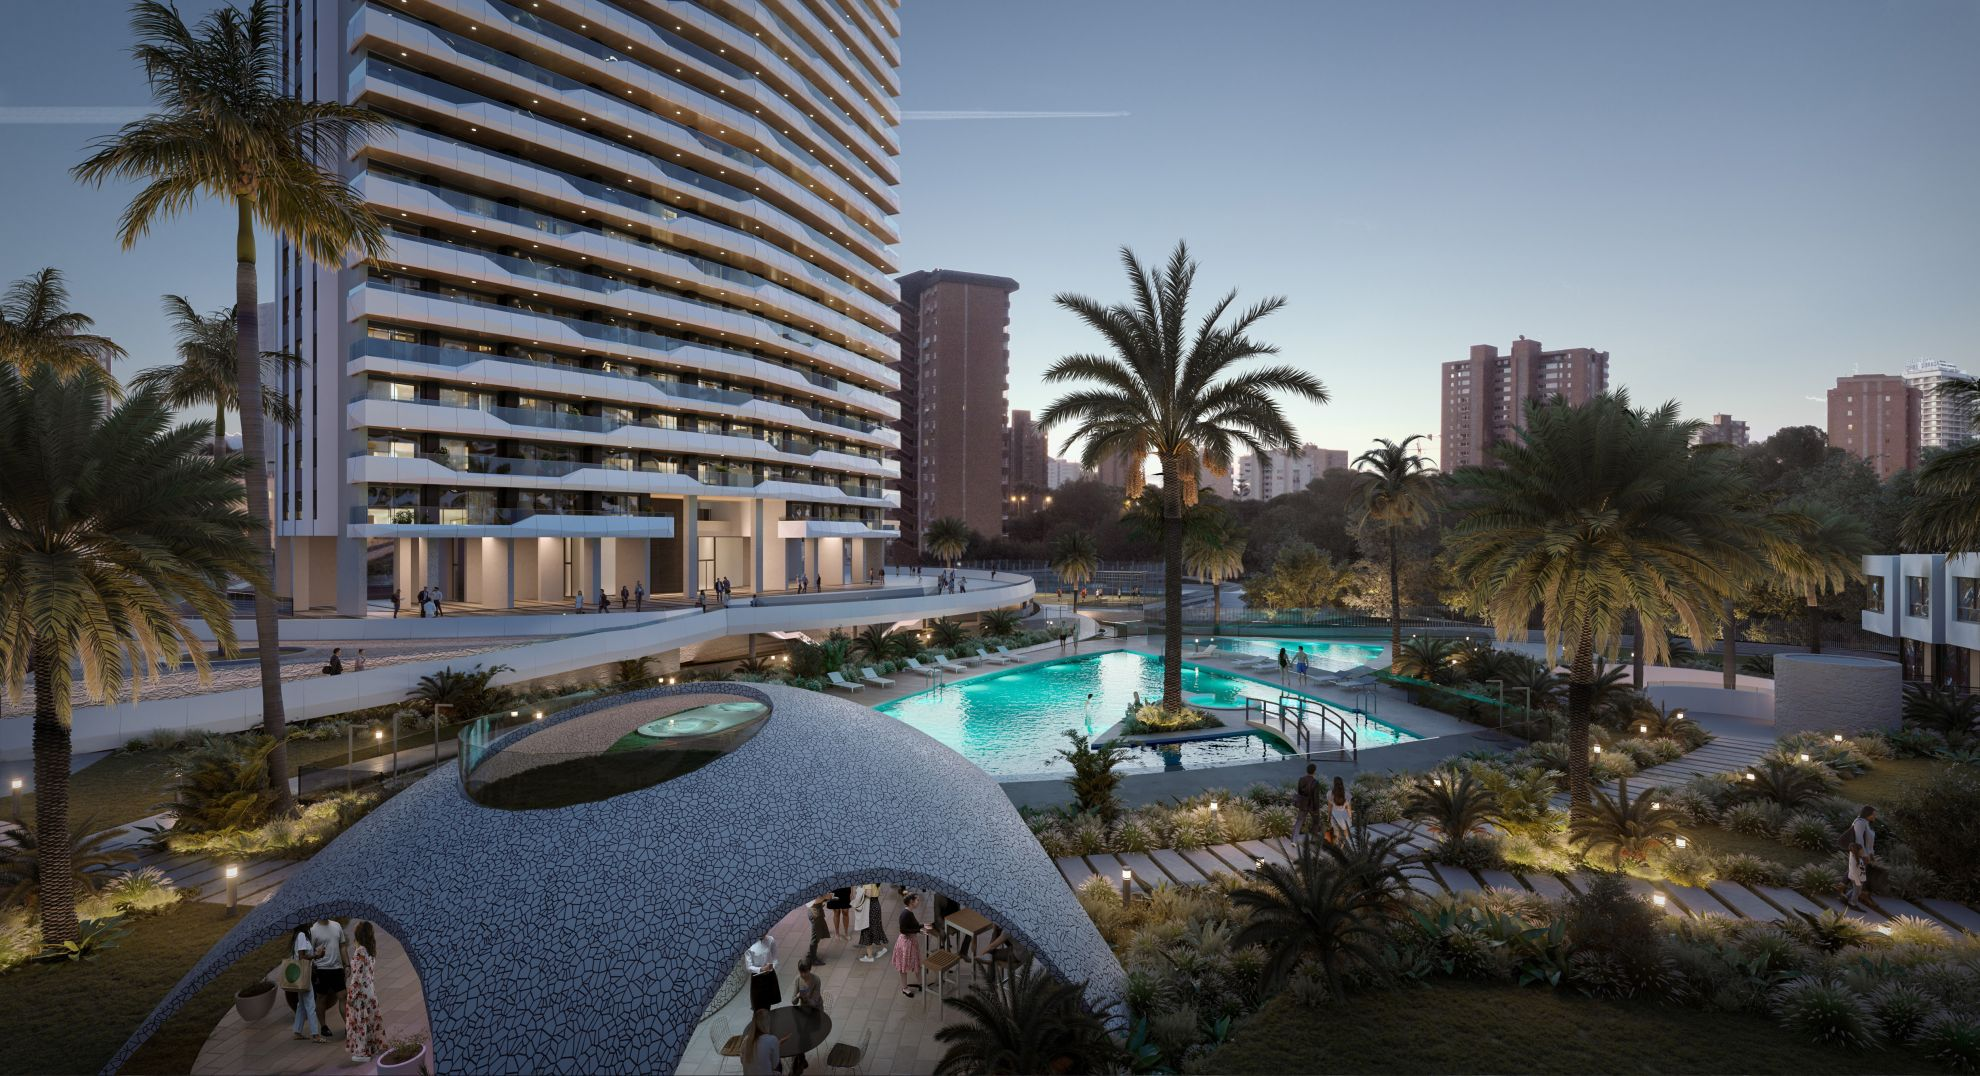 Exclusive apartments in the beautiful location of Benidorm 15